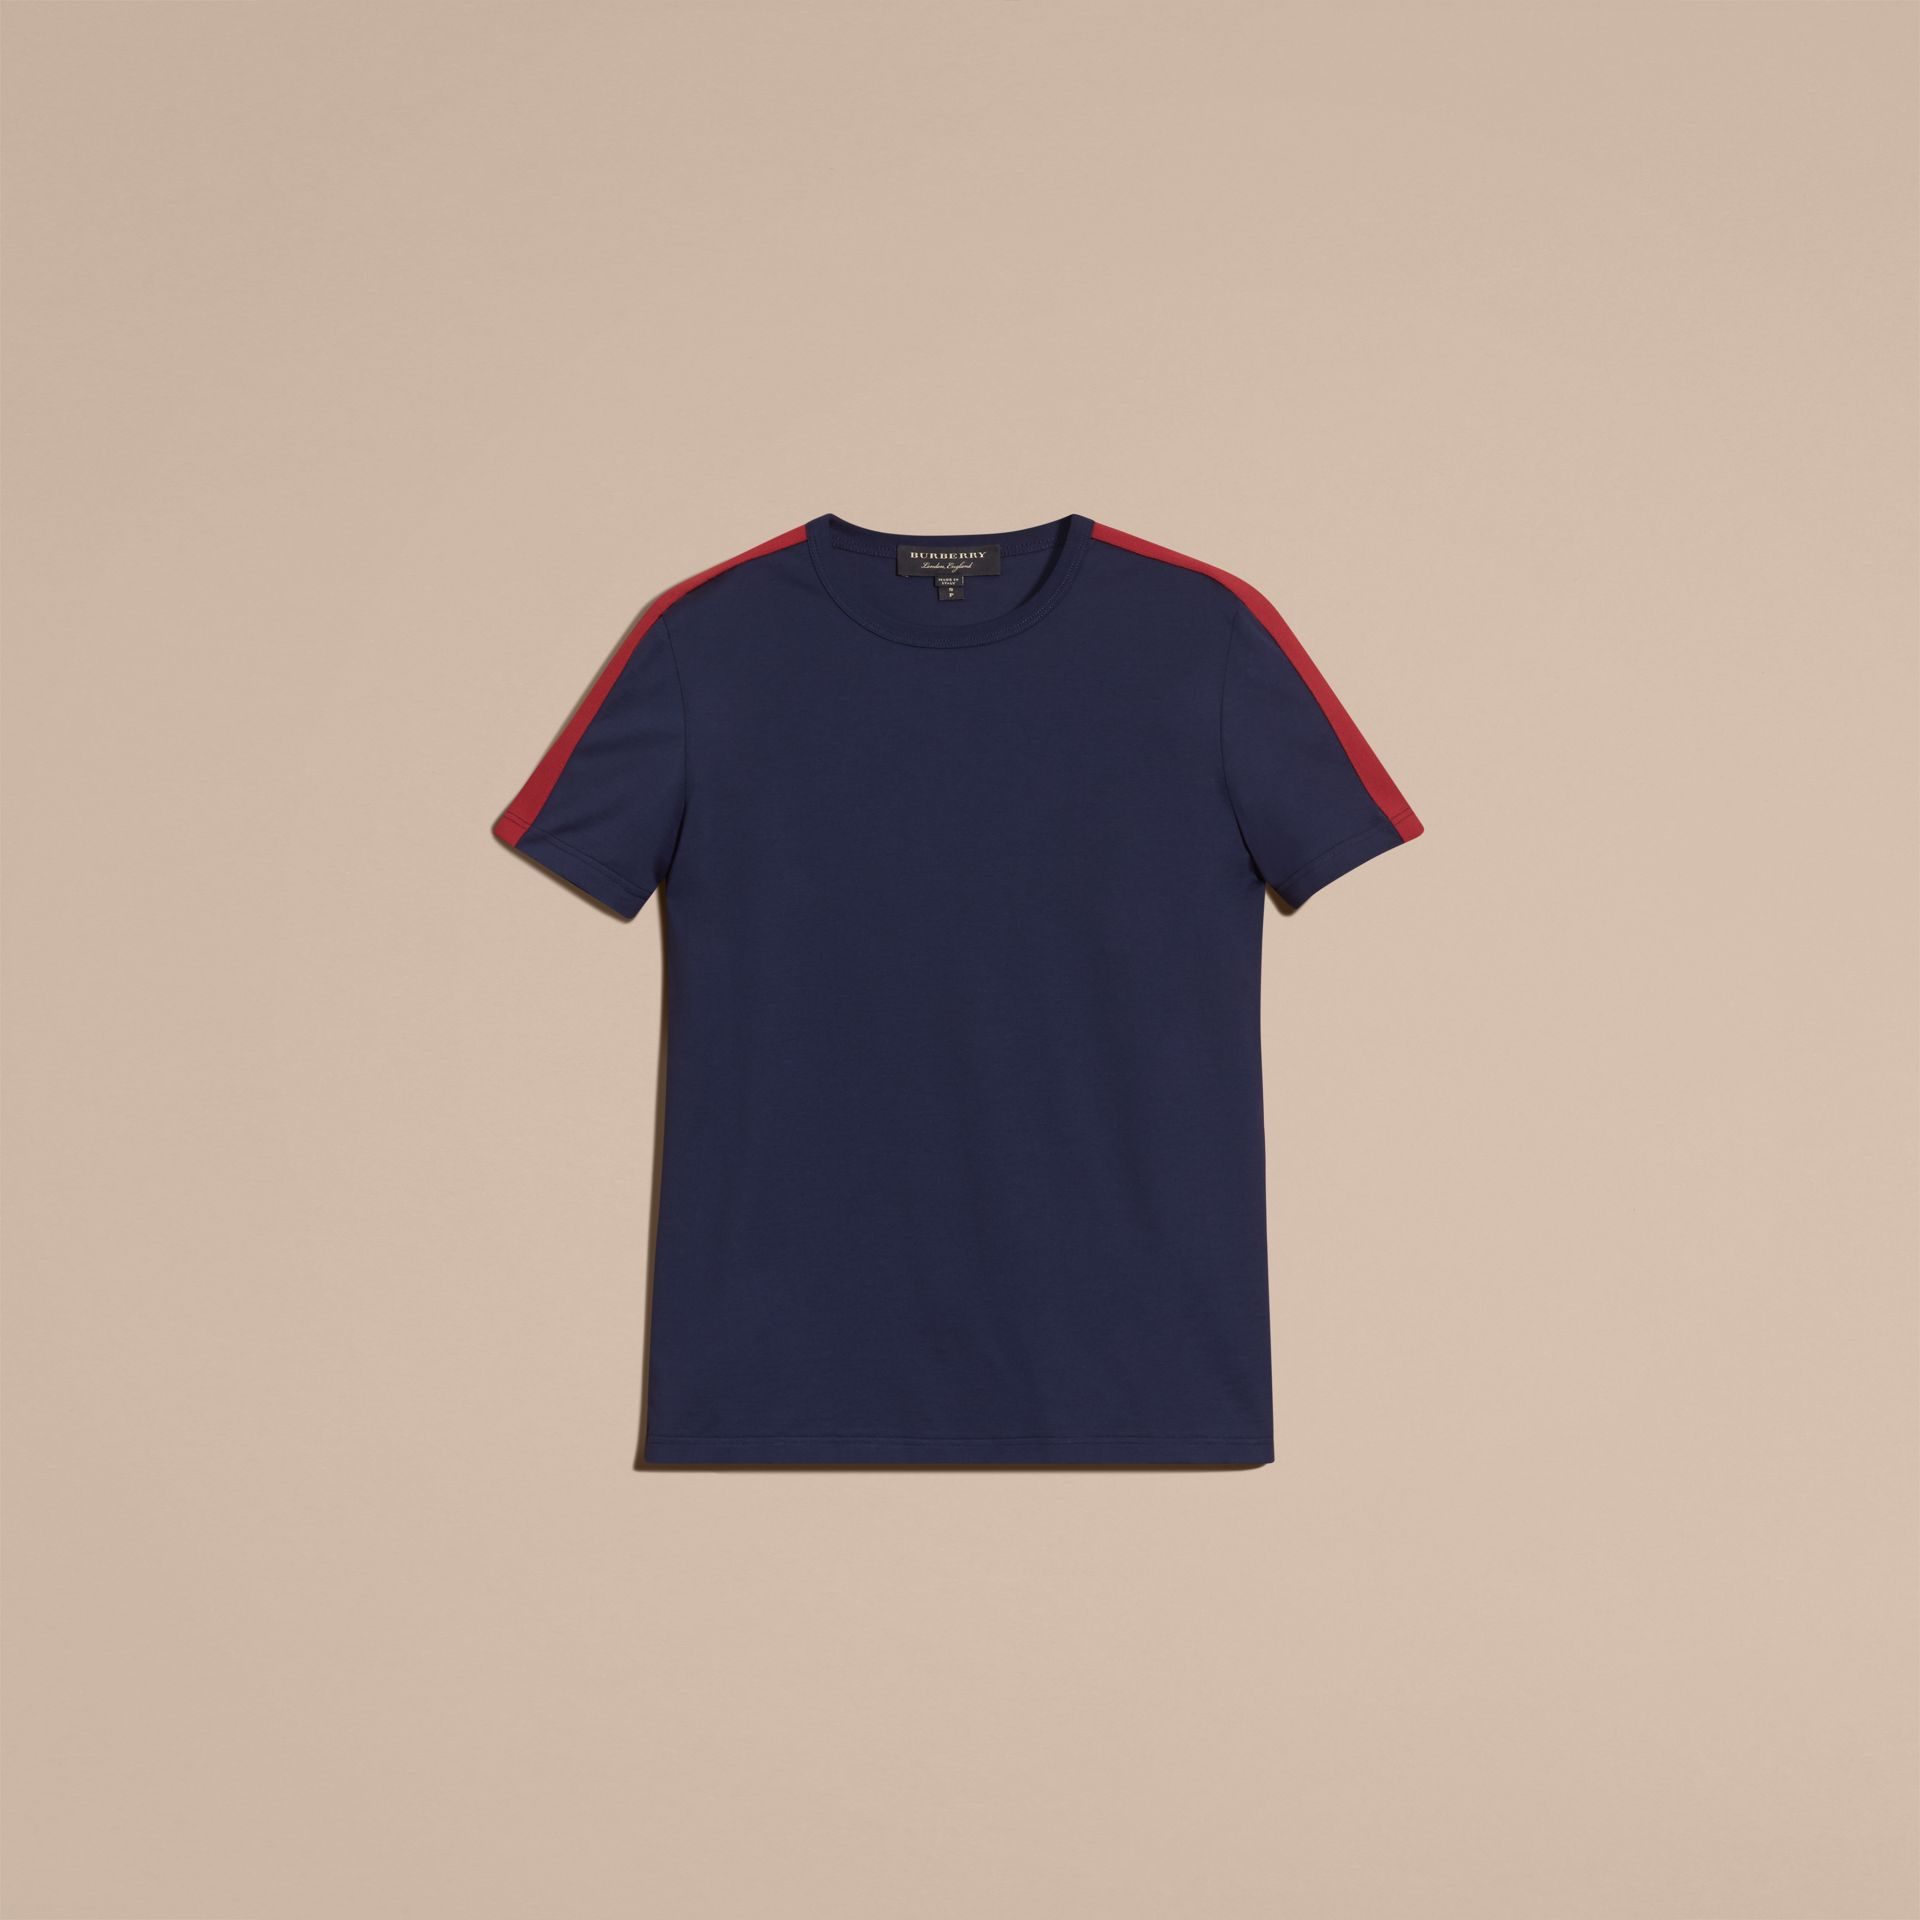 Navy Shoulder Stripe Cotton T-shirt Navy - gallery image 4